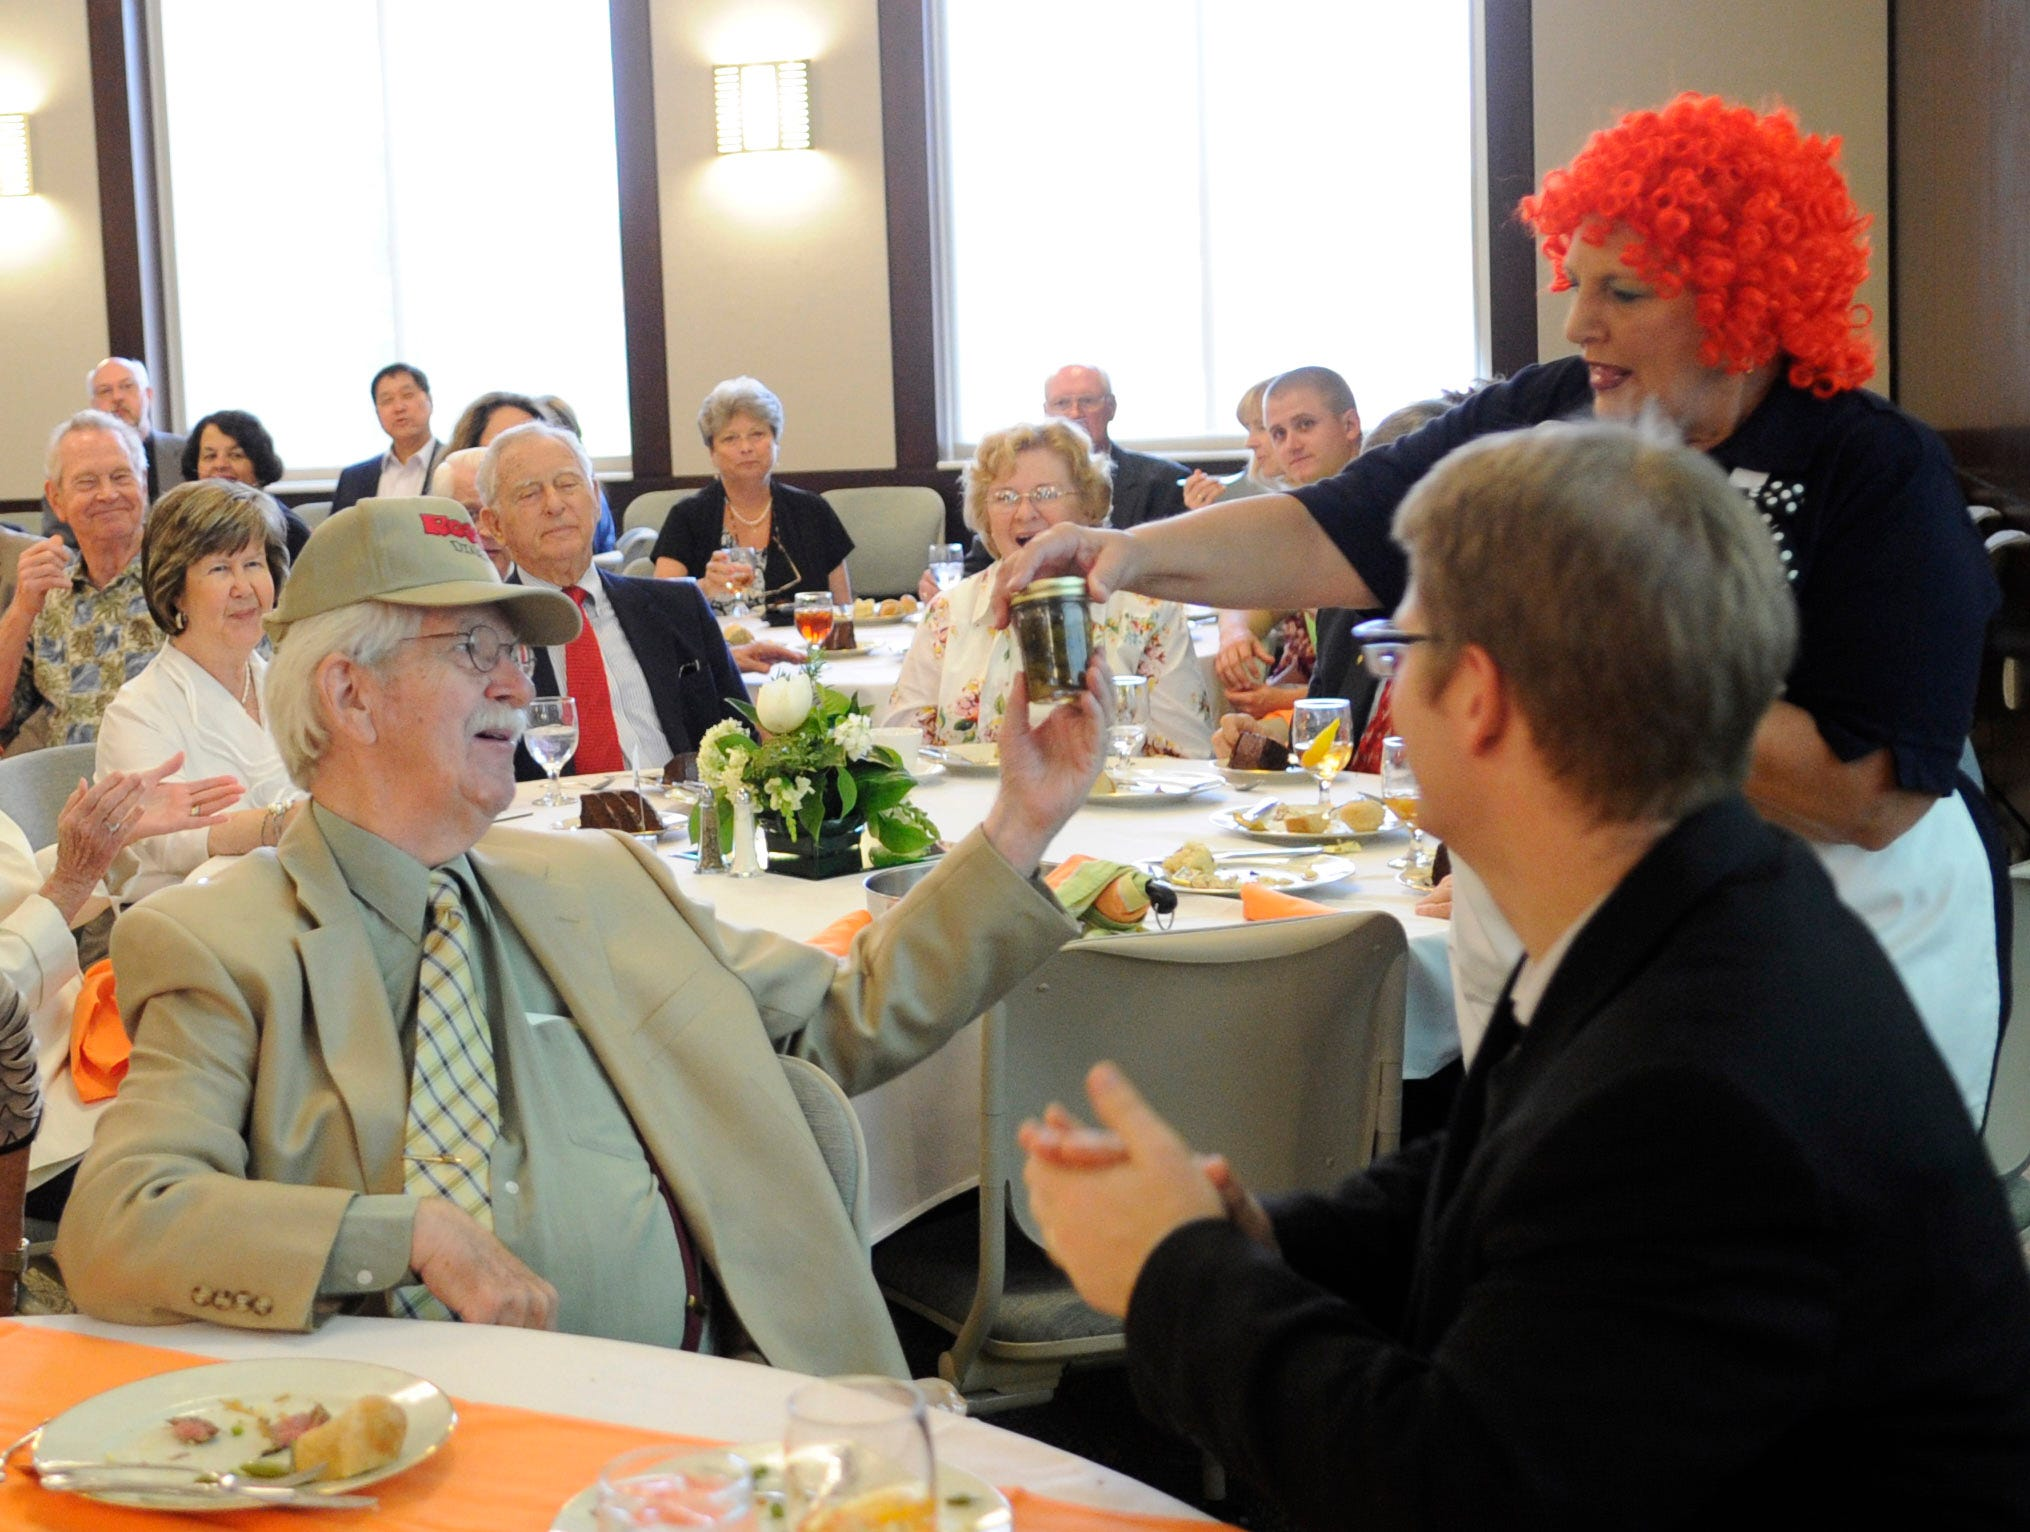 """""""Rosie"""" played by Kathy Burnett, right, presents a jar of sweet pickles to Charlie Daniel, left, as former Senators Howard Baker and Nancy Kassebaum celebrate the work of the Knoxville News Sentinel cartoonist at the Baker Center on Thursday, May 17, 2012. Seated next to Mr. Daniel is his wife Patsy Daniel."""